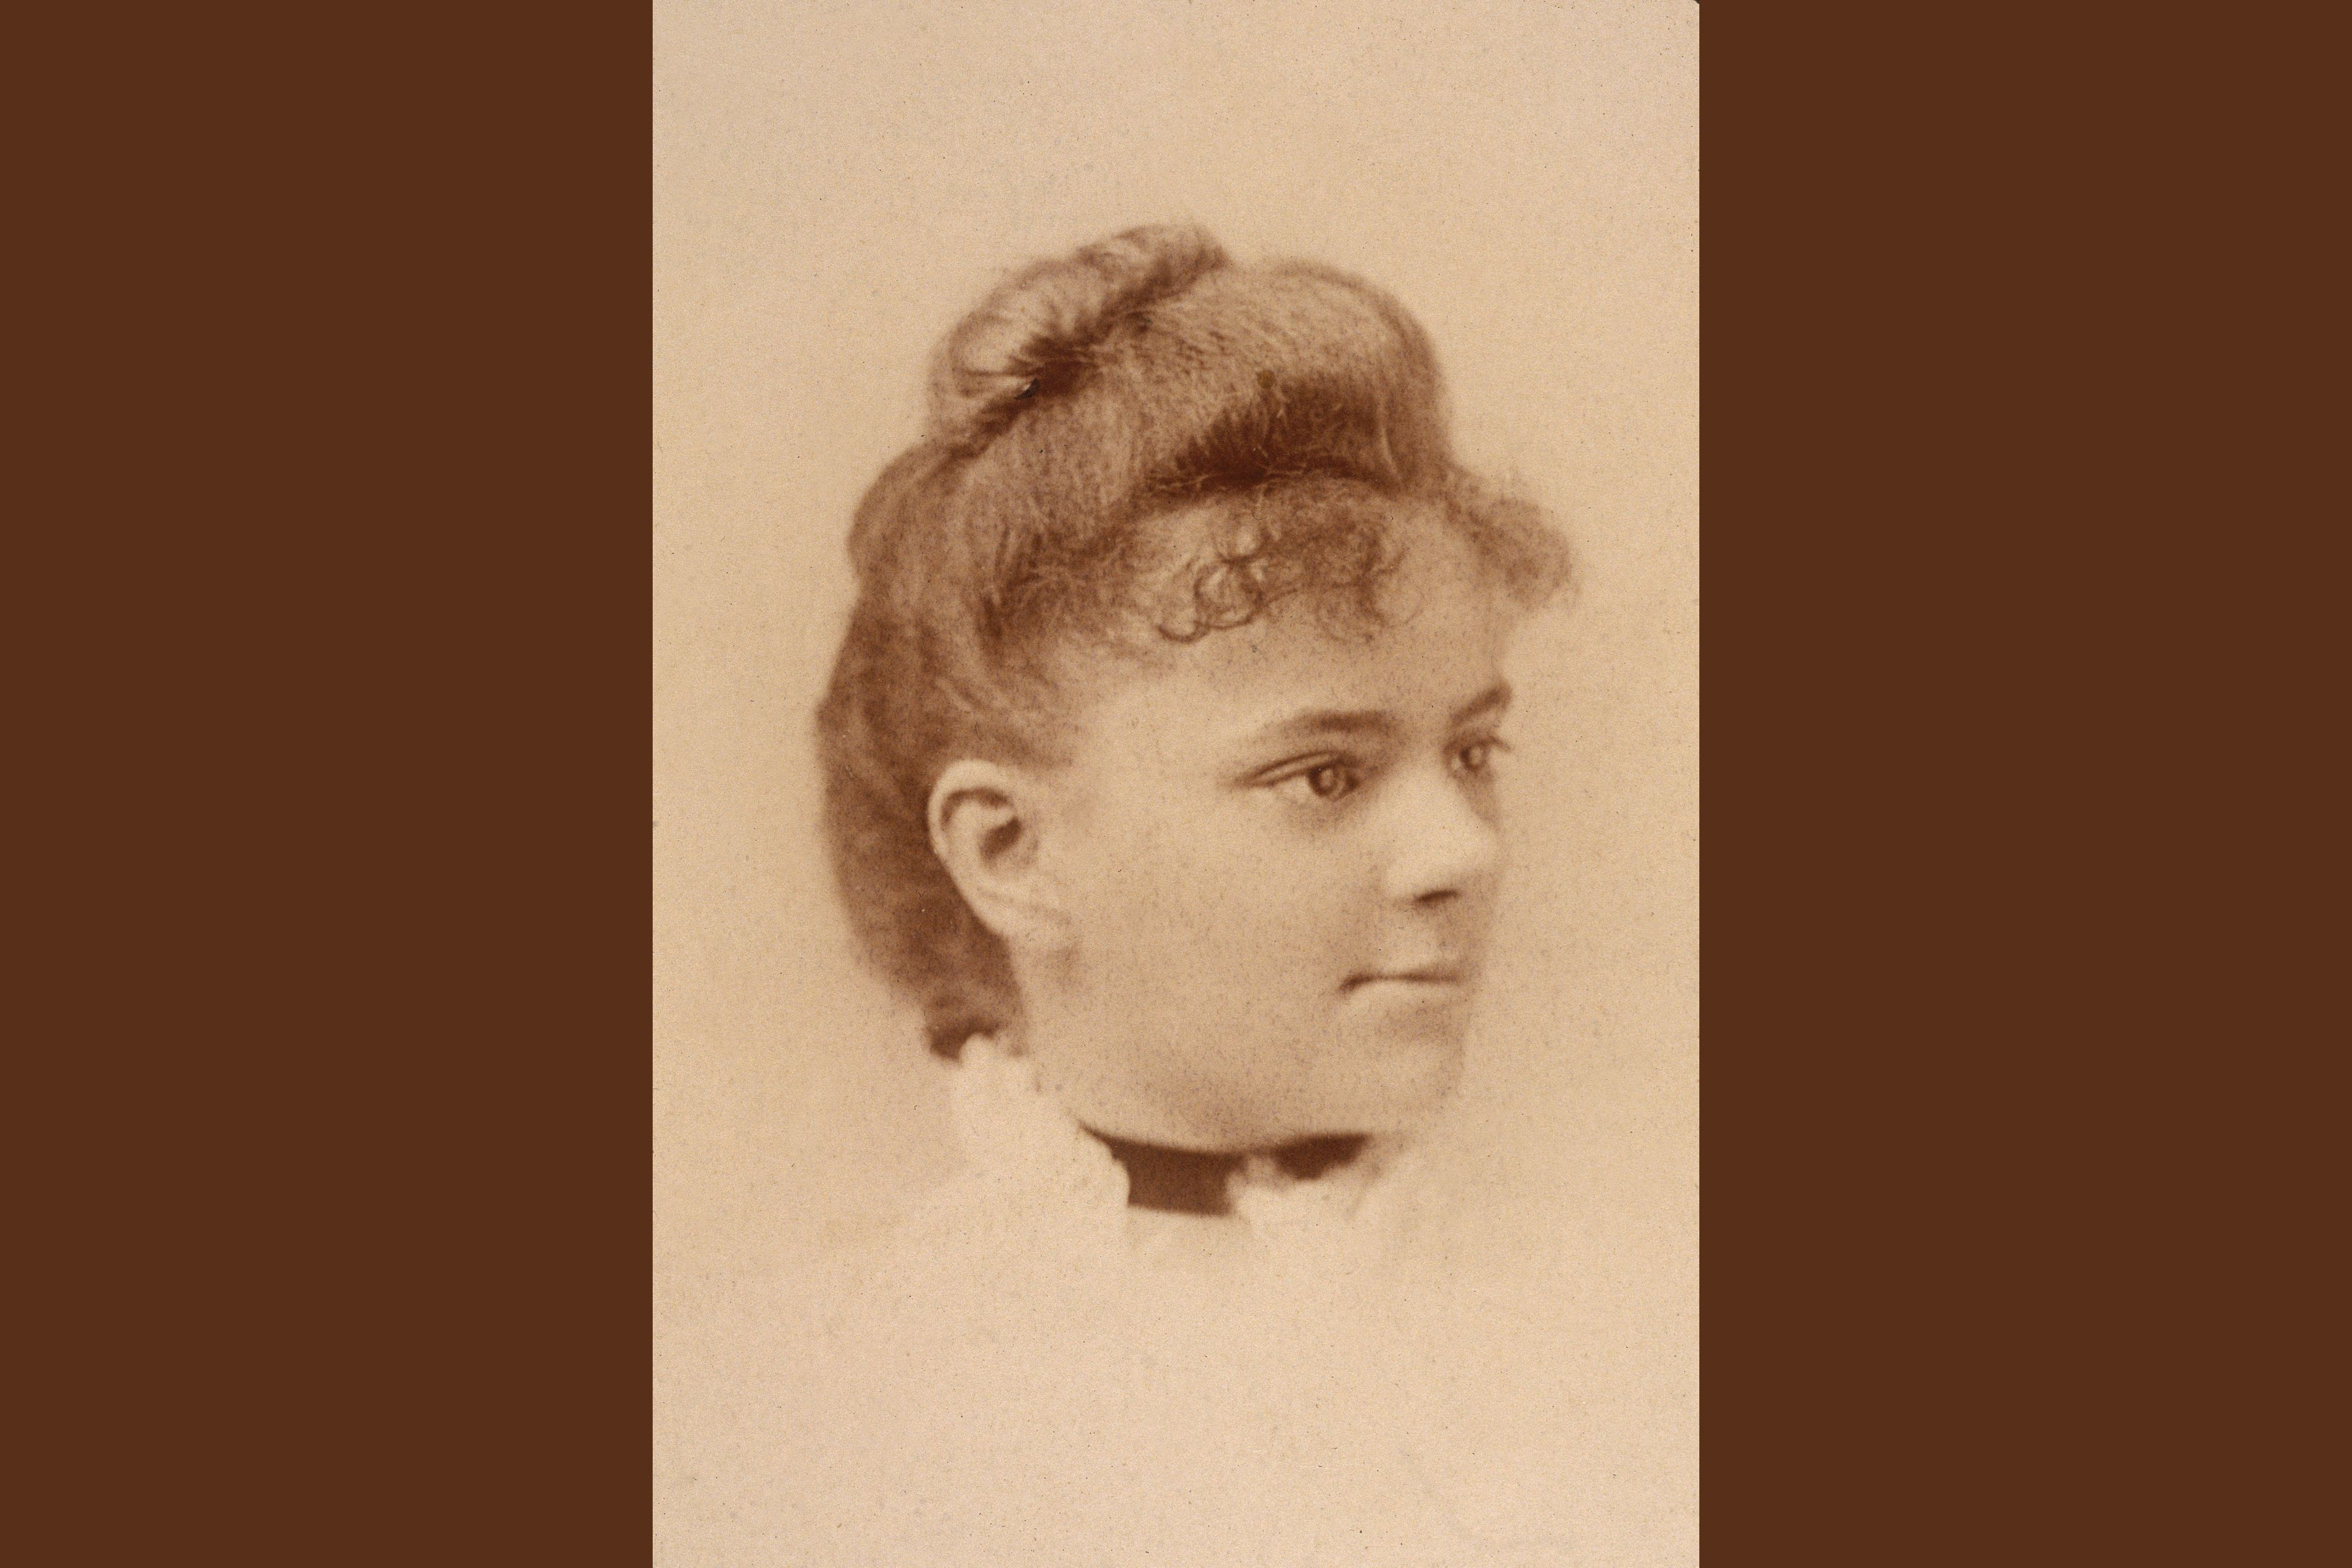 the life and medical life of celebrated woman elizabeth blackwell On january 23, 1849 elizabeth blackwell graduates from medical school with the highest grades in the class she has become the first woman doctor in america many people hope that she would be the last.